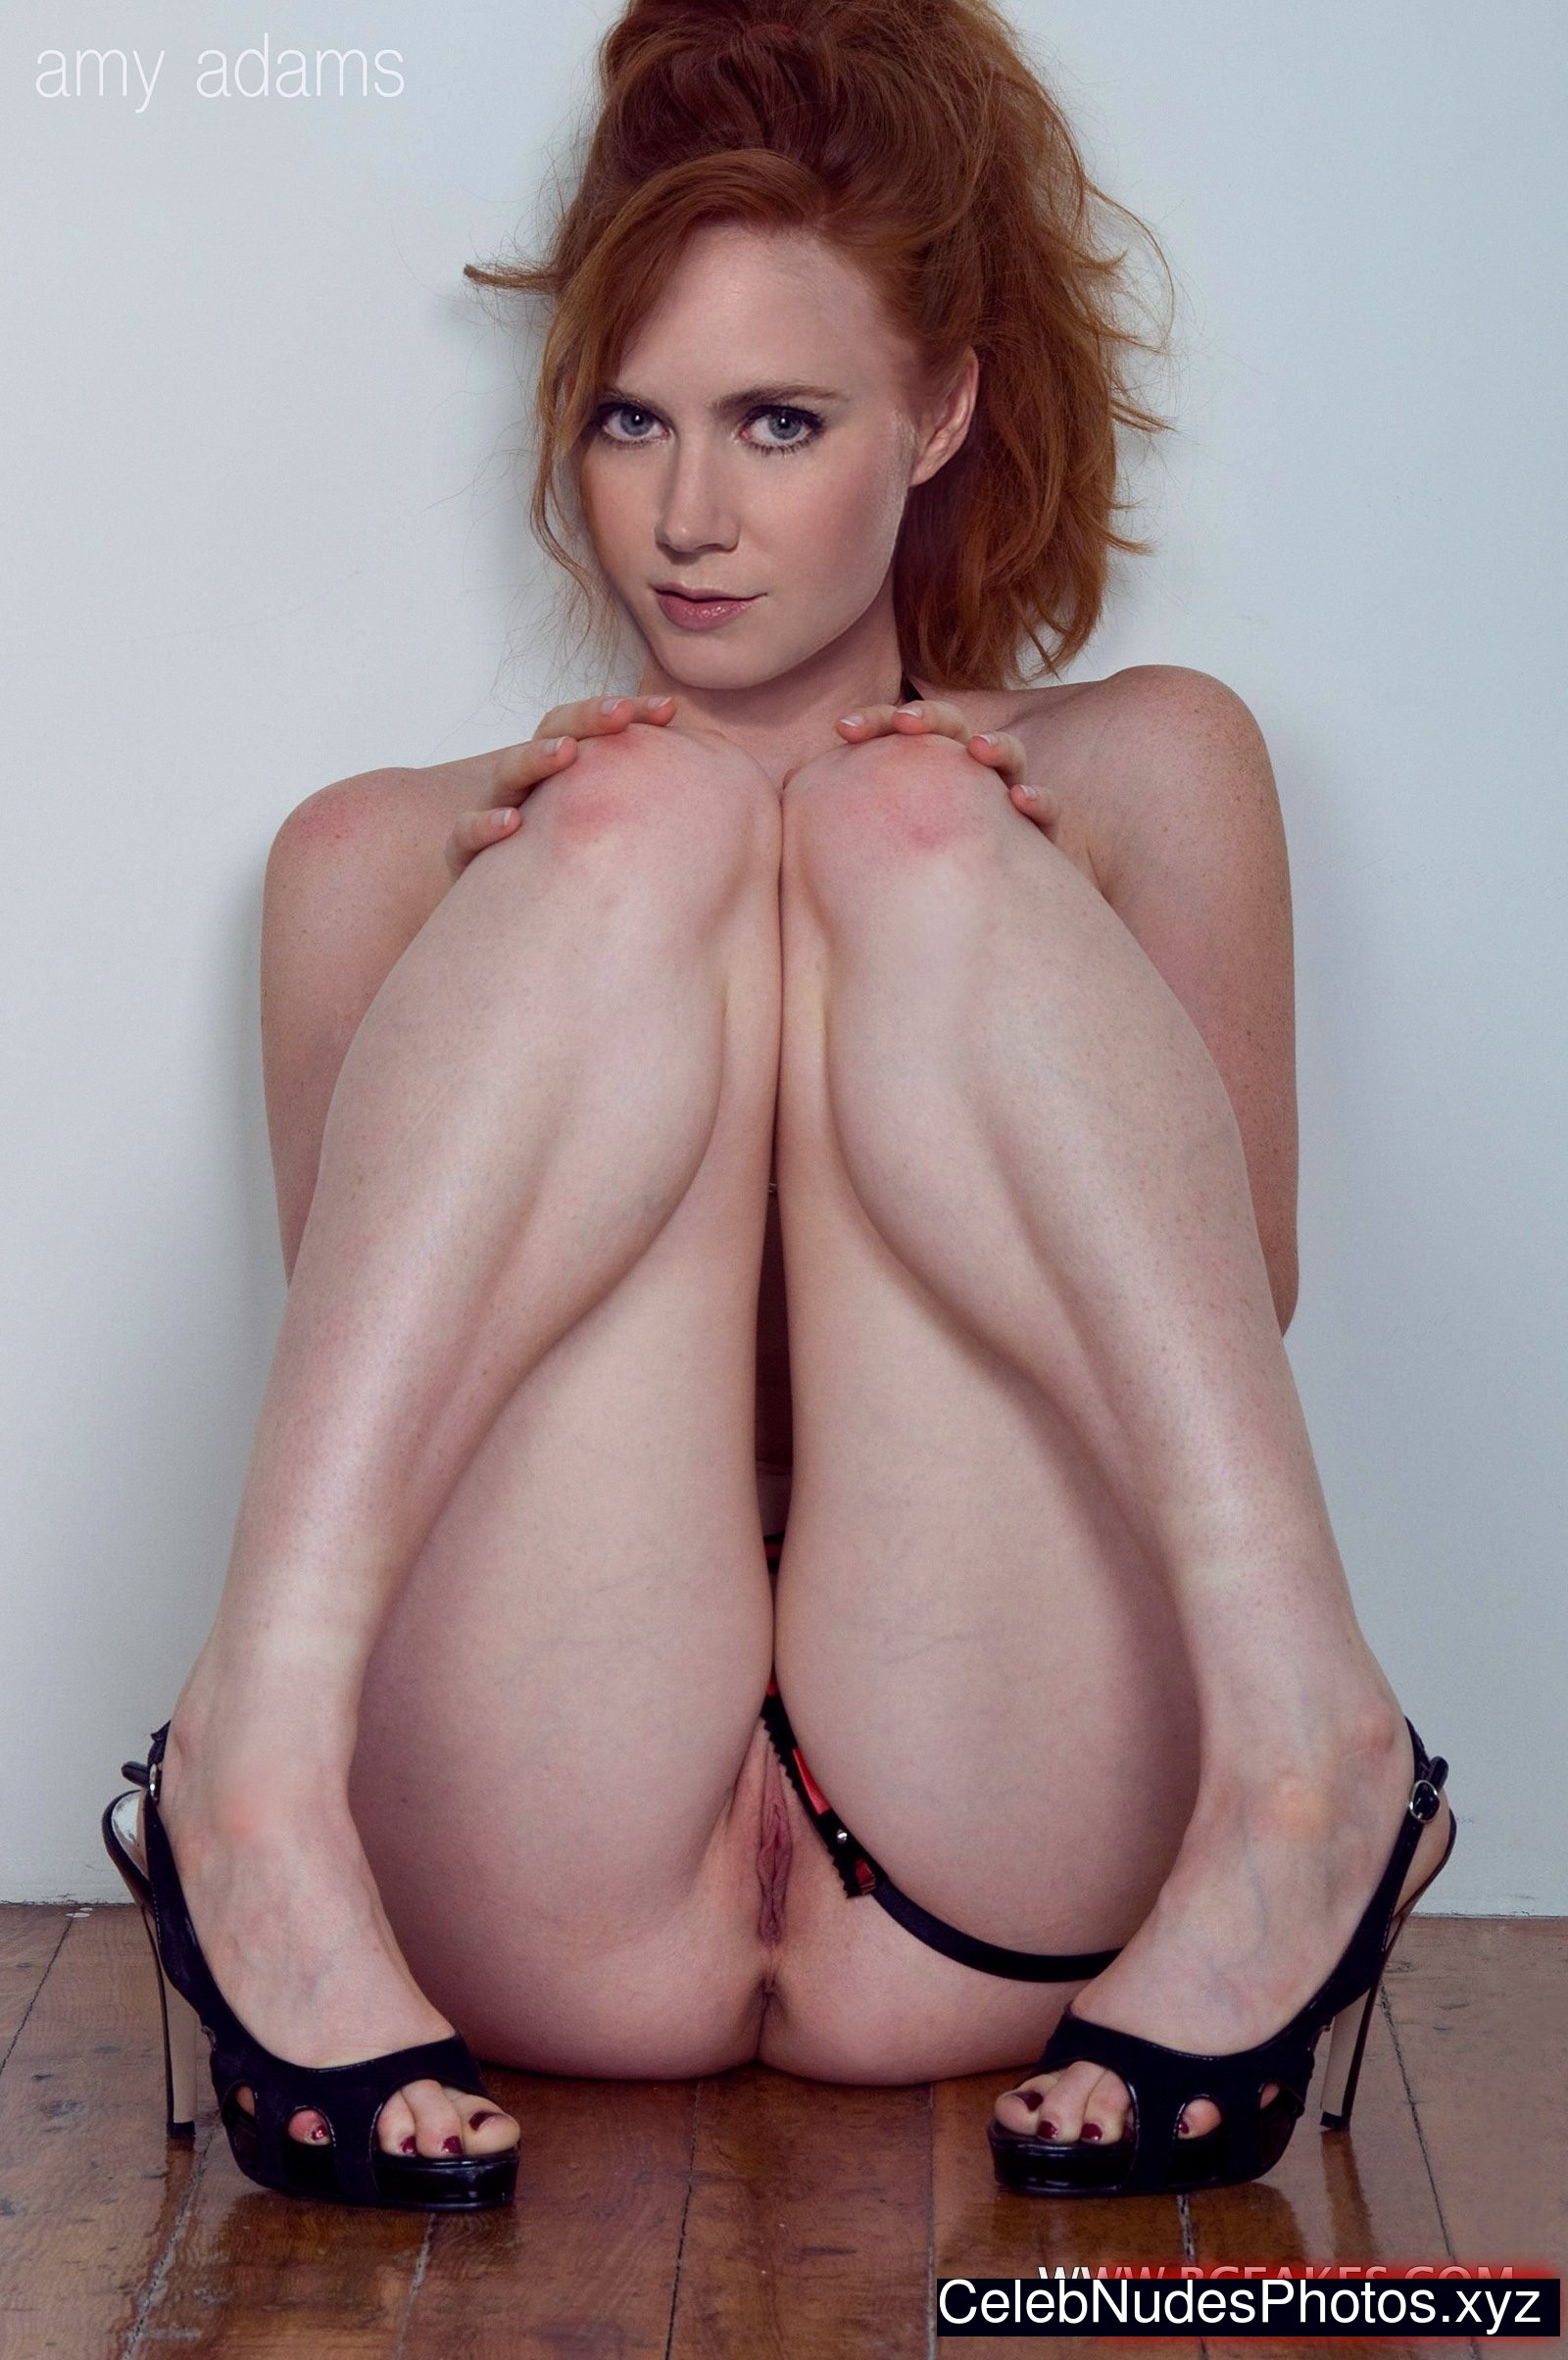 Showing images for amy adams hot xxx